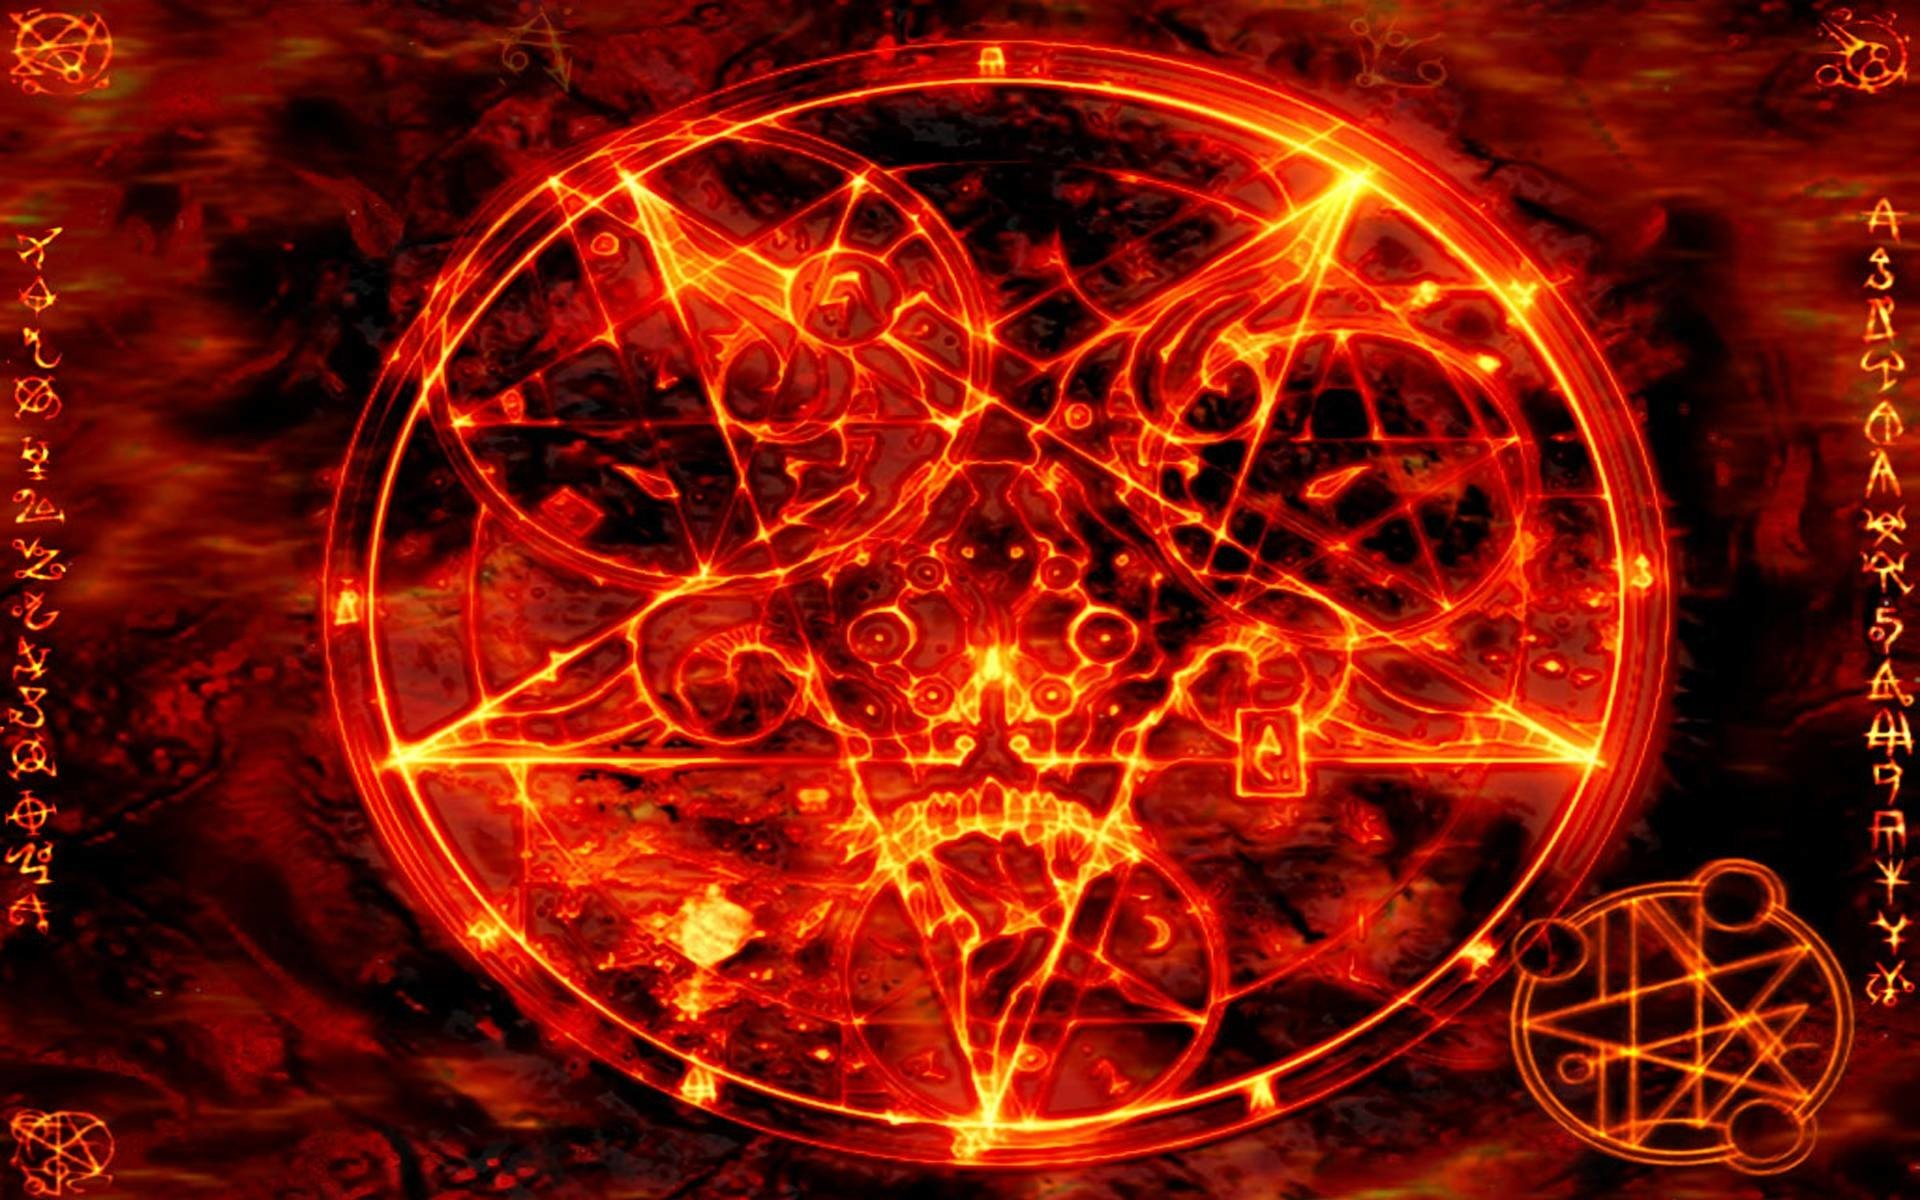 Res: 1920x1200, Here at xshyfc.com You Can Download More than Three Million Wallpaper  collections Uploaded By Users. All Pictures are CC0. Which Means You Can  Use For ...